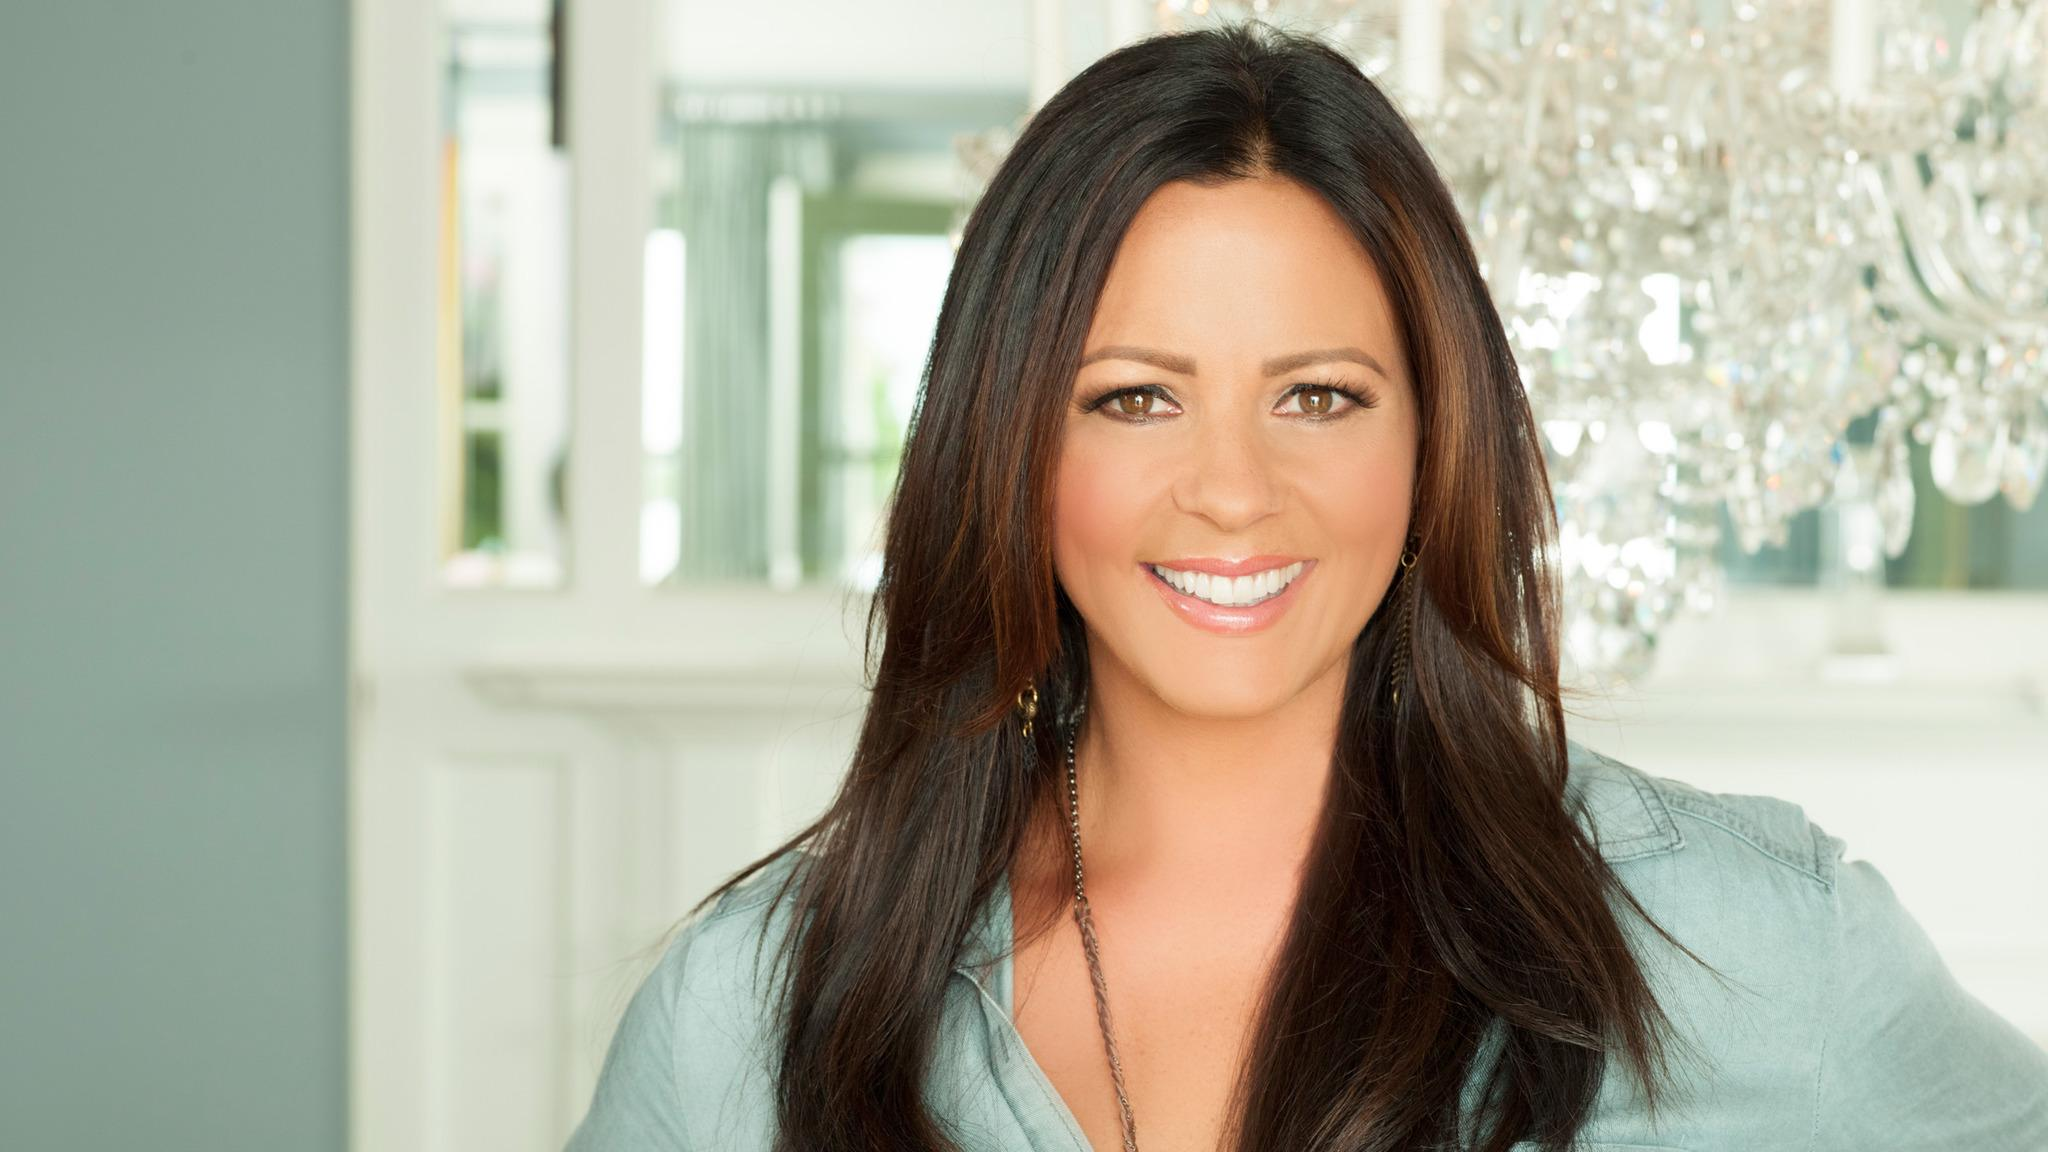 Sara Evans, Caroline Jones at Helena Civic Center